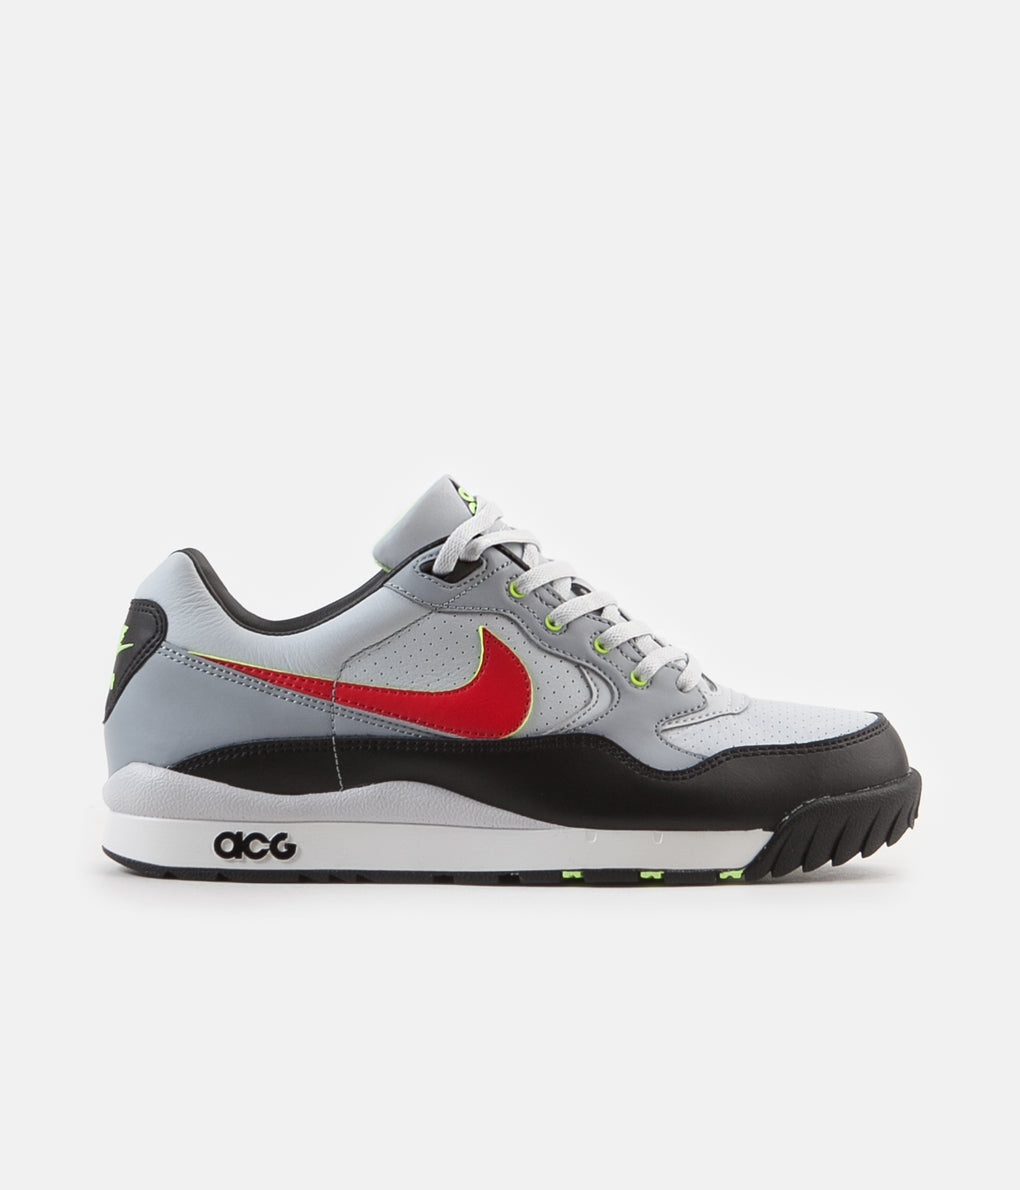 Nike ACG Air Wildwood Shoes - Pure Platinum / Comet Red - Mist Blue - Black